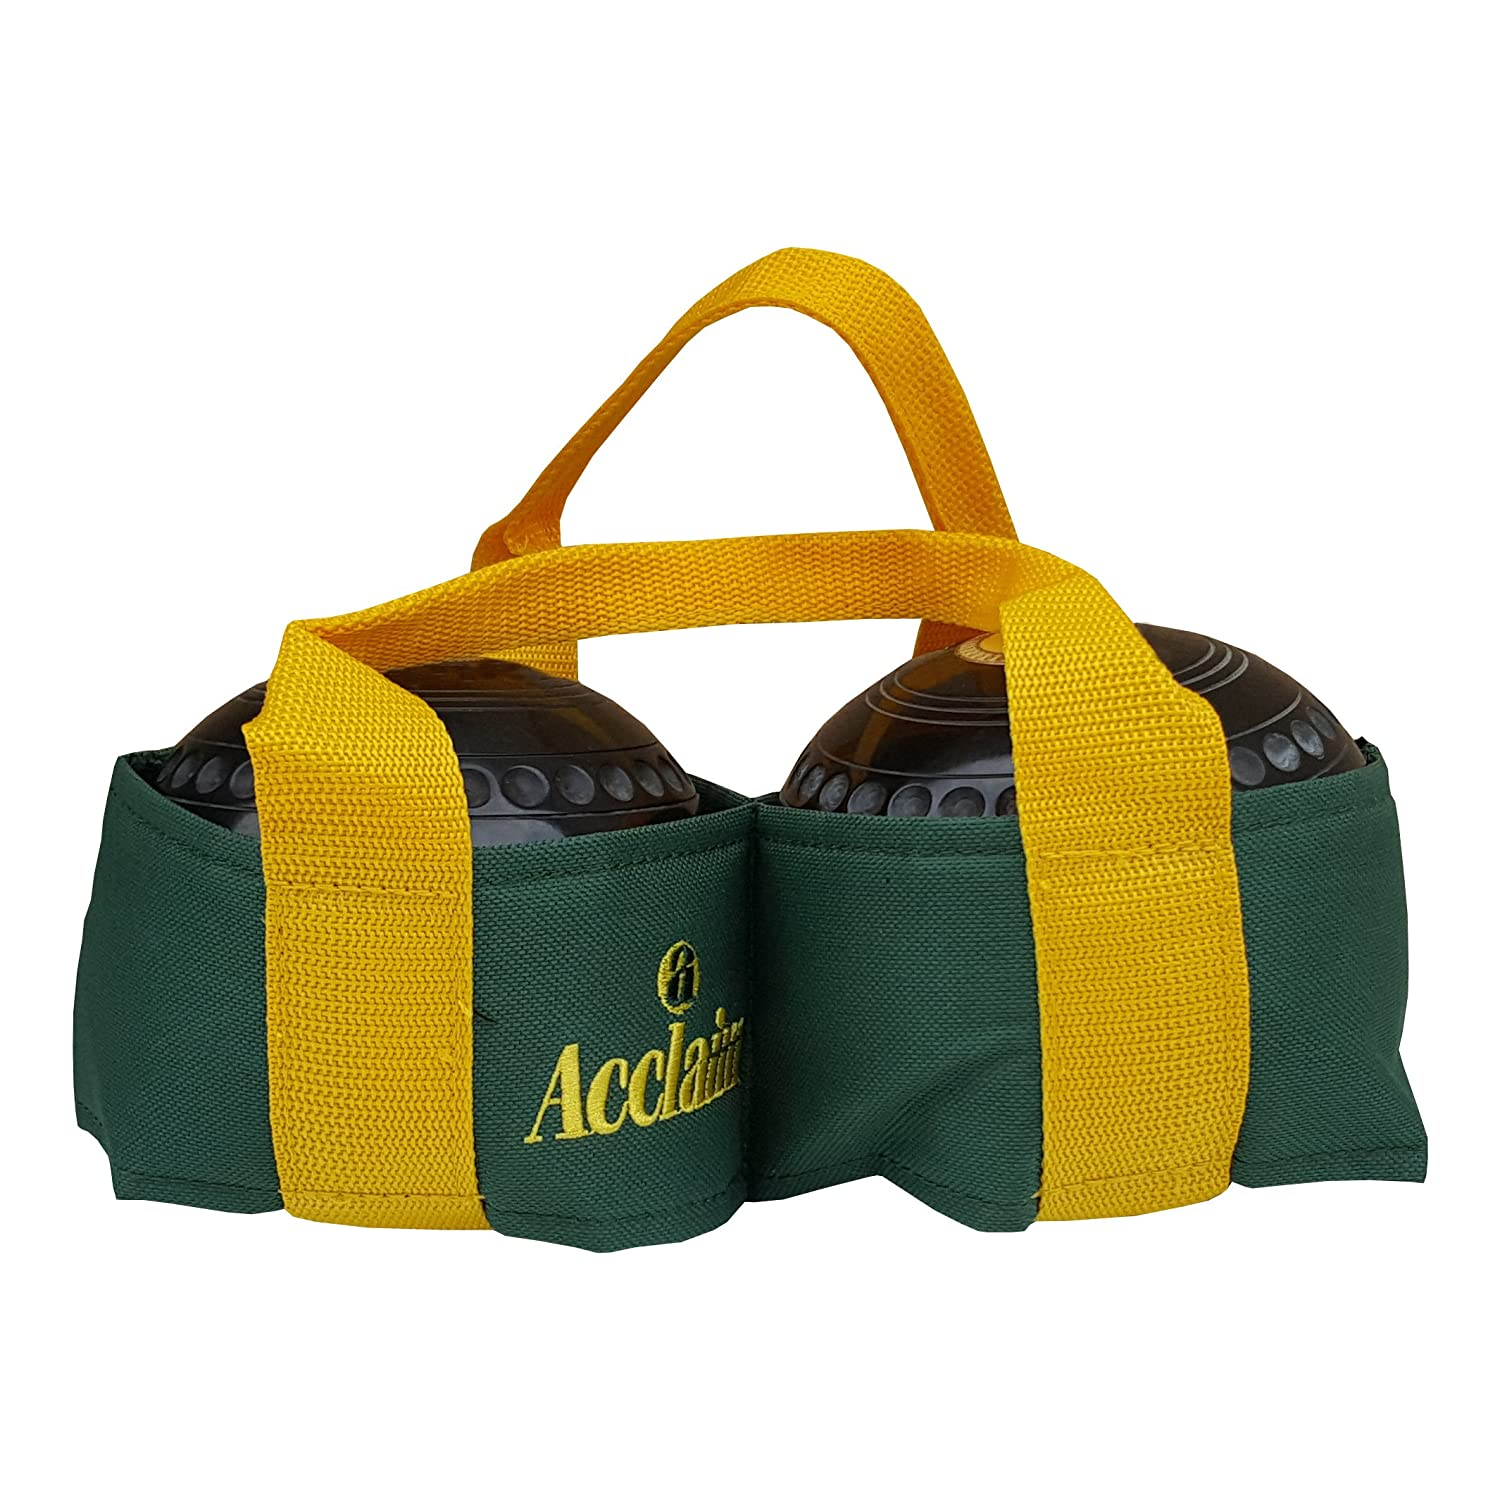 Acclaim Chatton Nylon Two Bowl Level Lawn Flat Green Short Mat Indoor Outdoor Bowls Carrier Bottle//Yellow